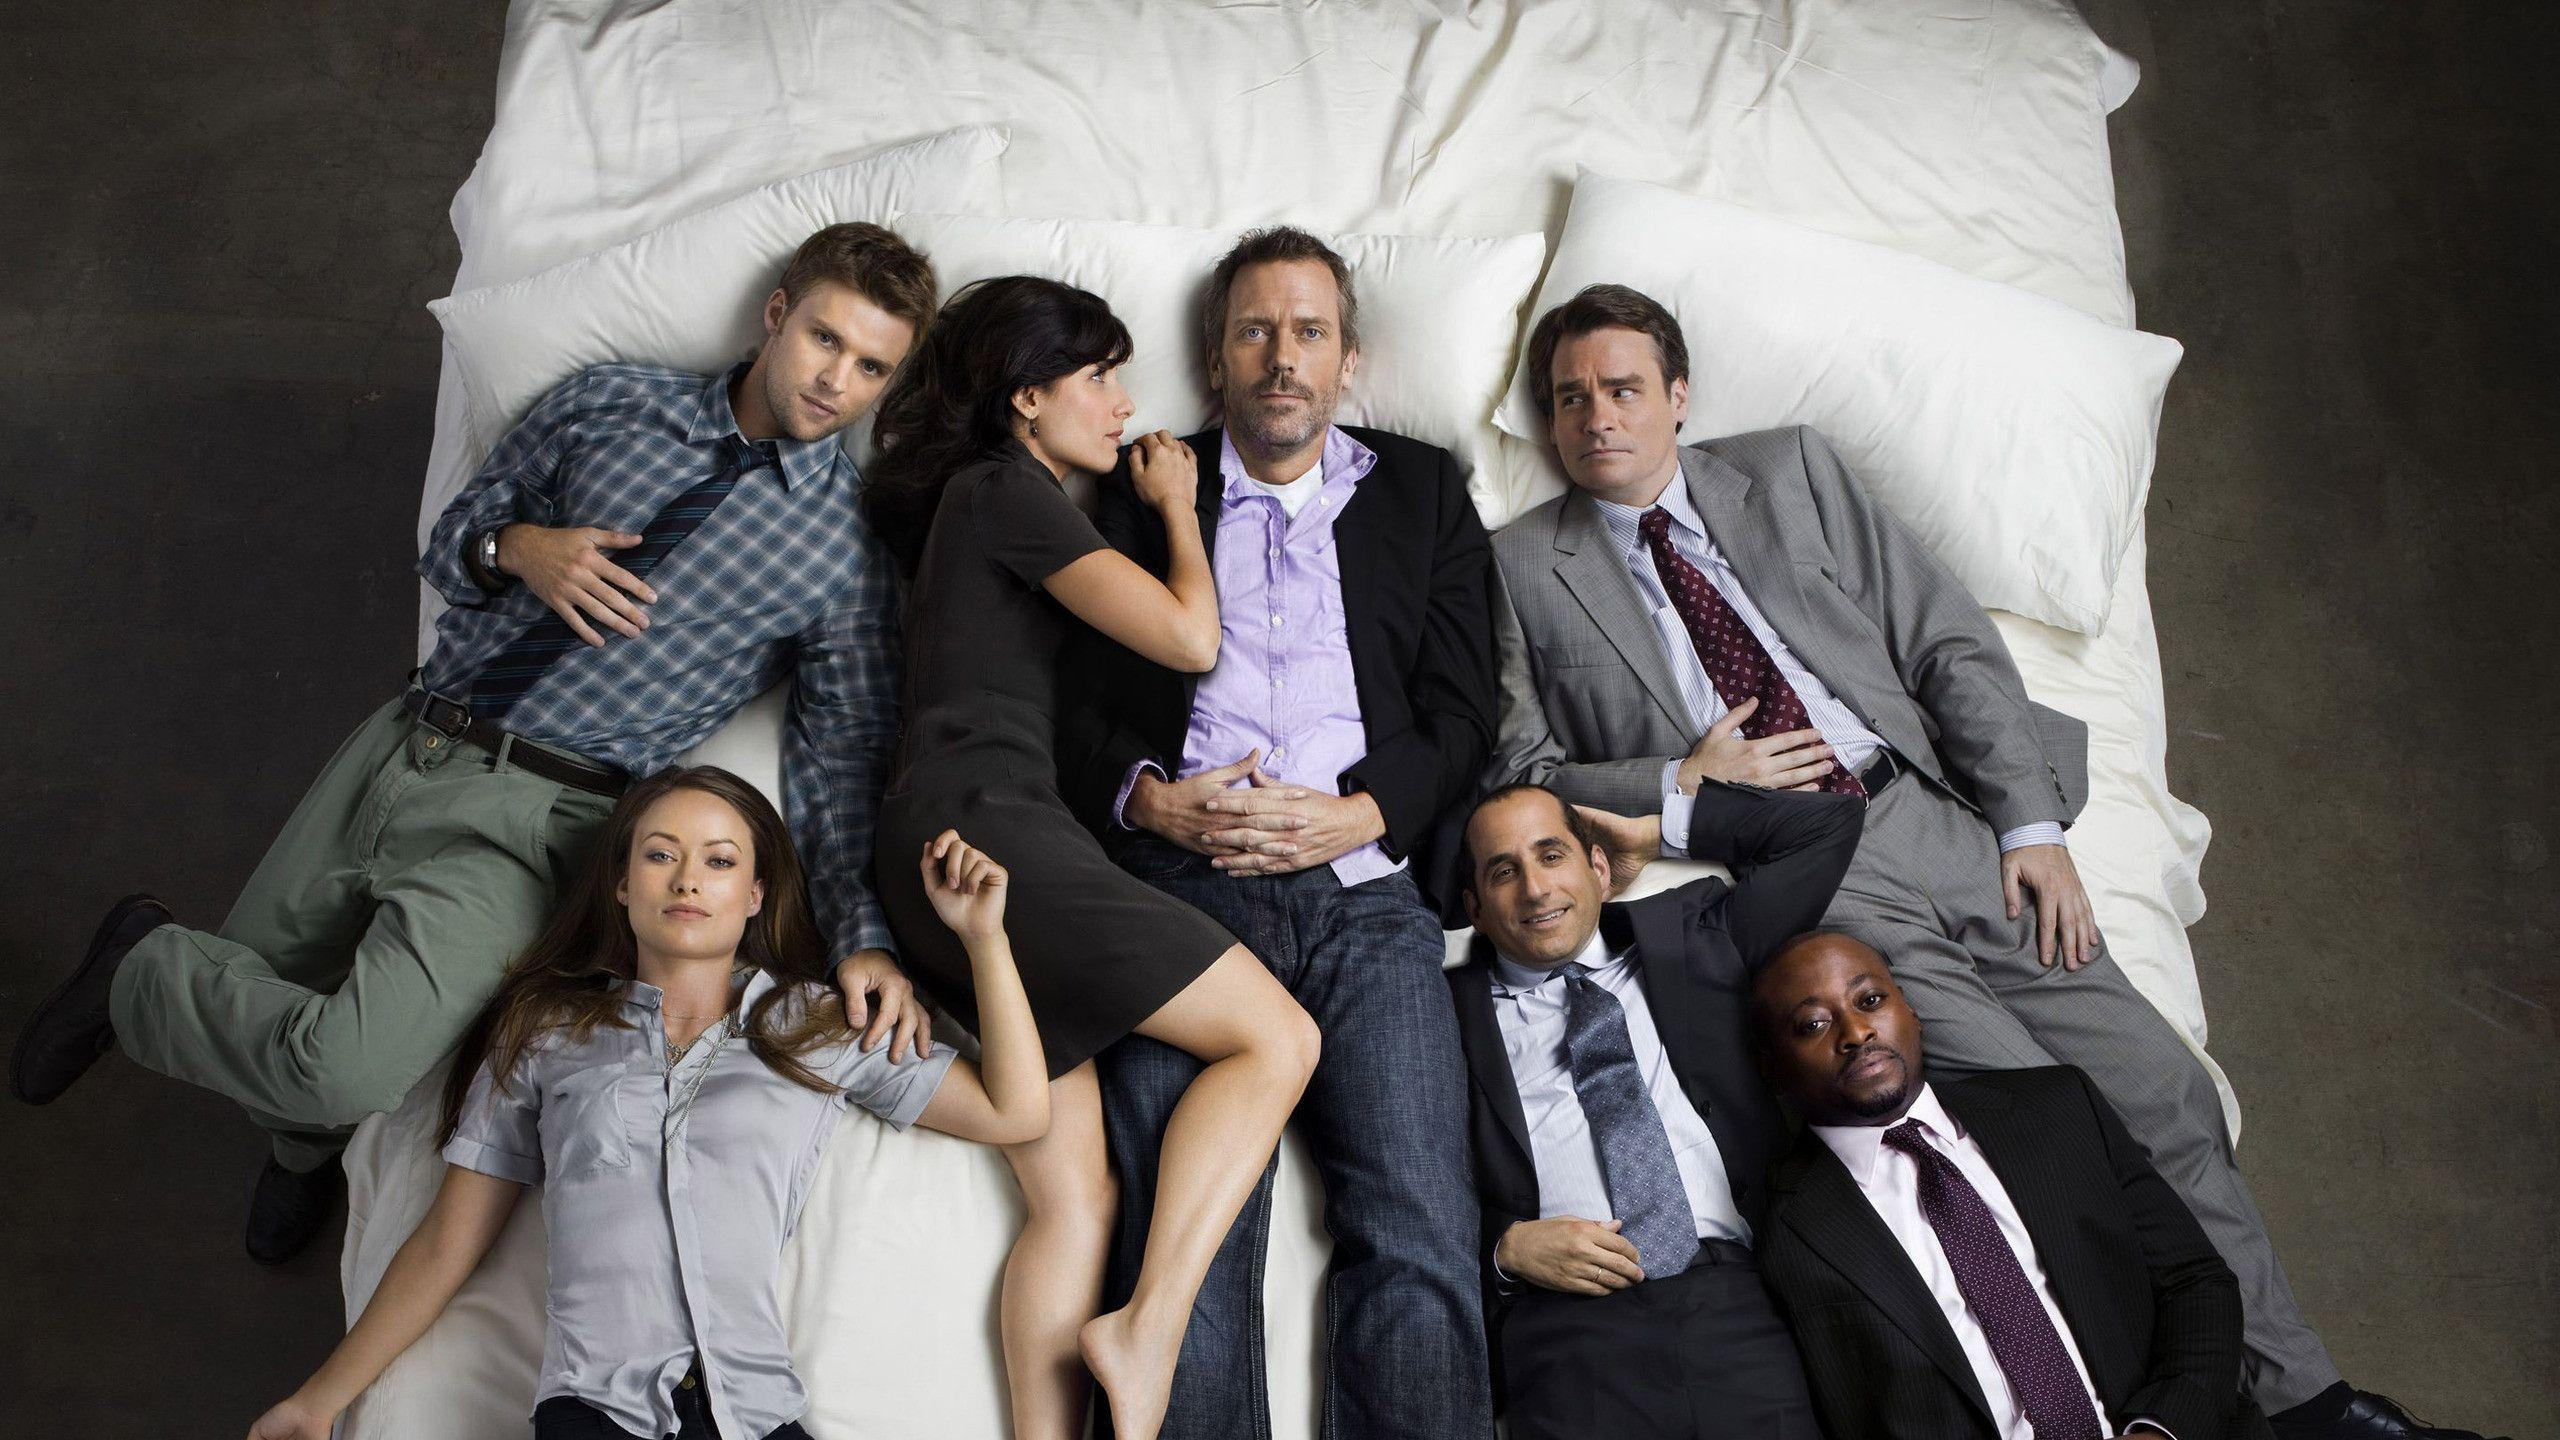 House MD cast Wallpaper #